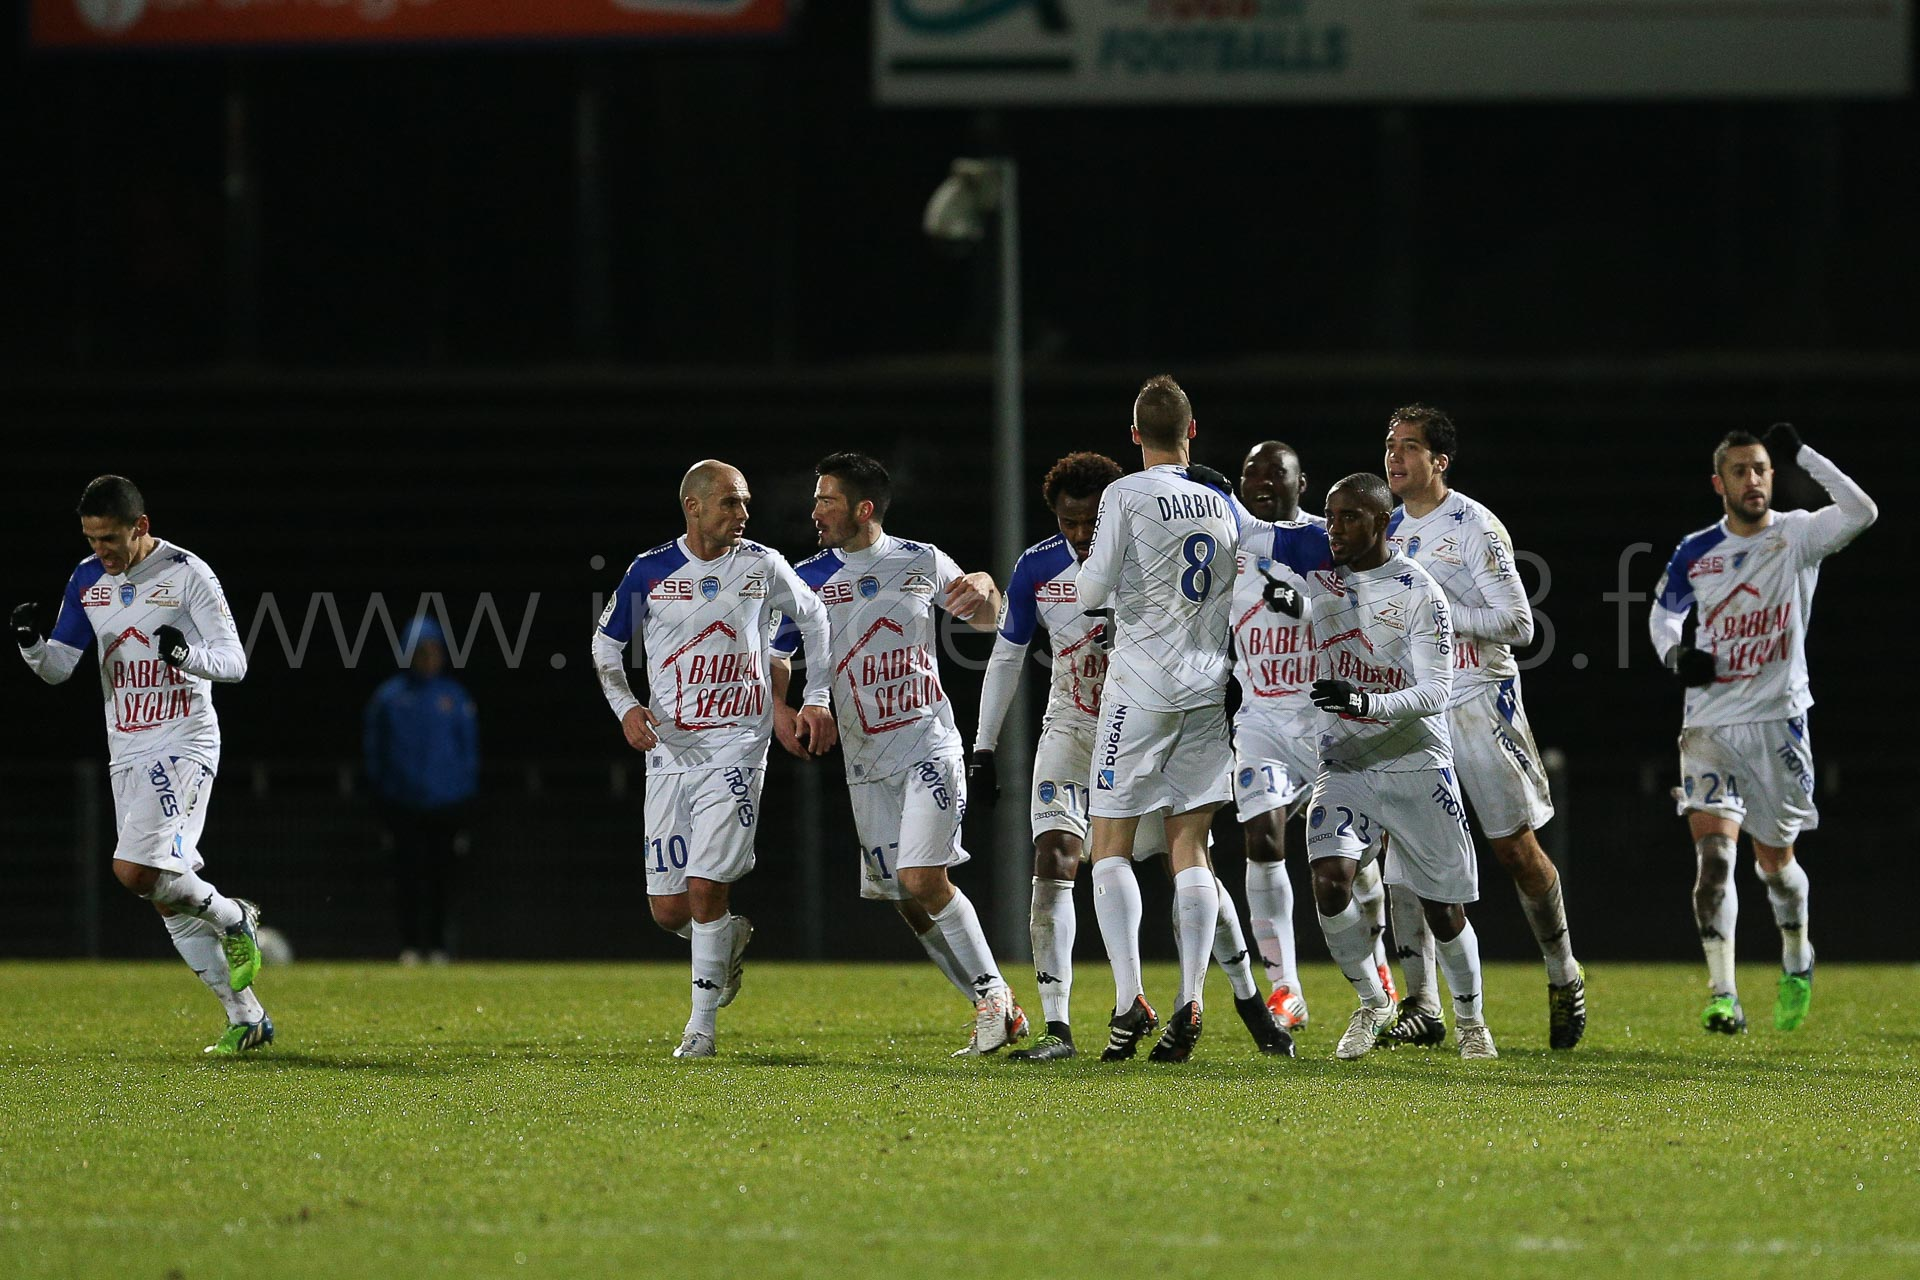 NG-Ligue2-1415-J22-Laval-Troyes_30